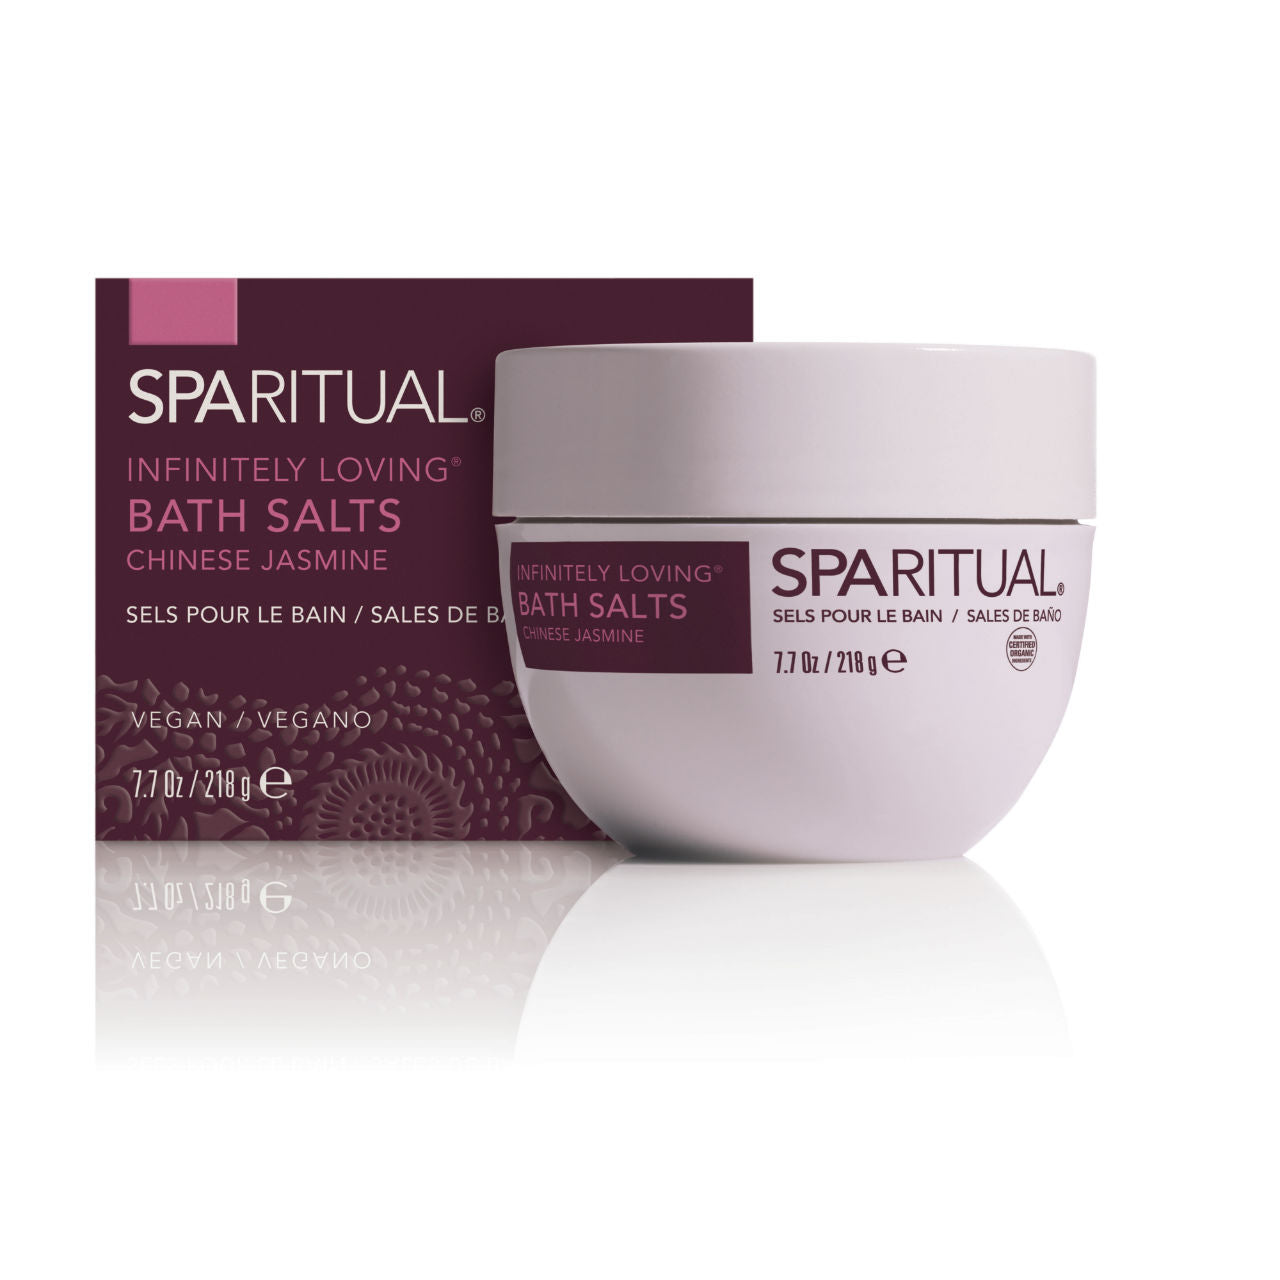 SPARITUAL Infinitely Loving® Bath Salts Box